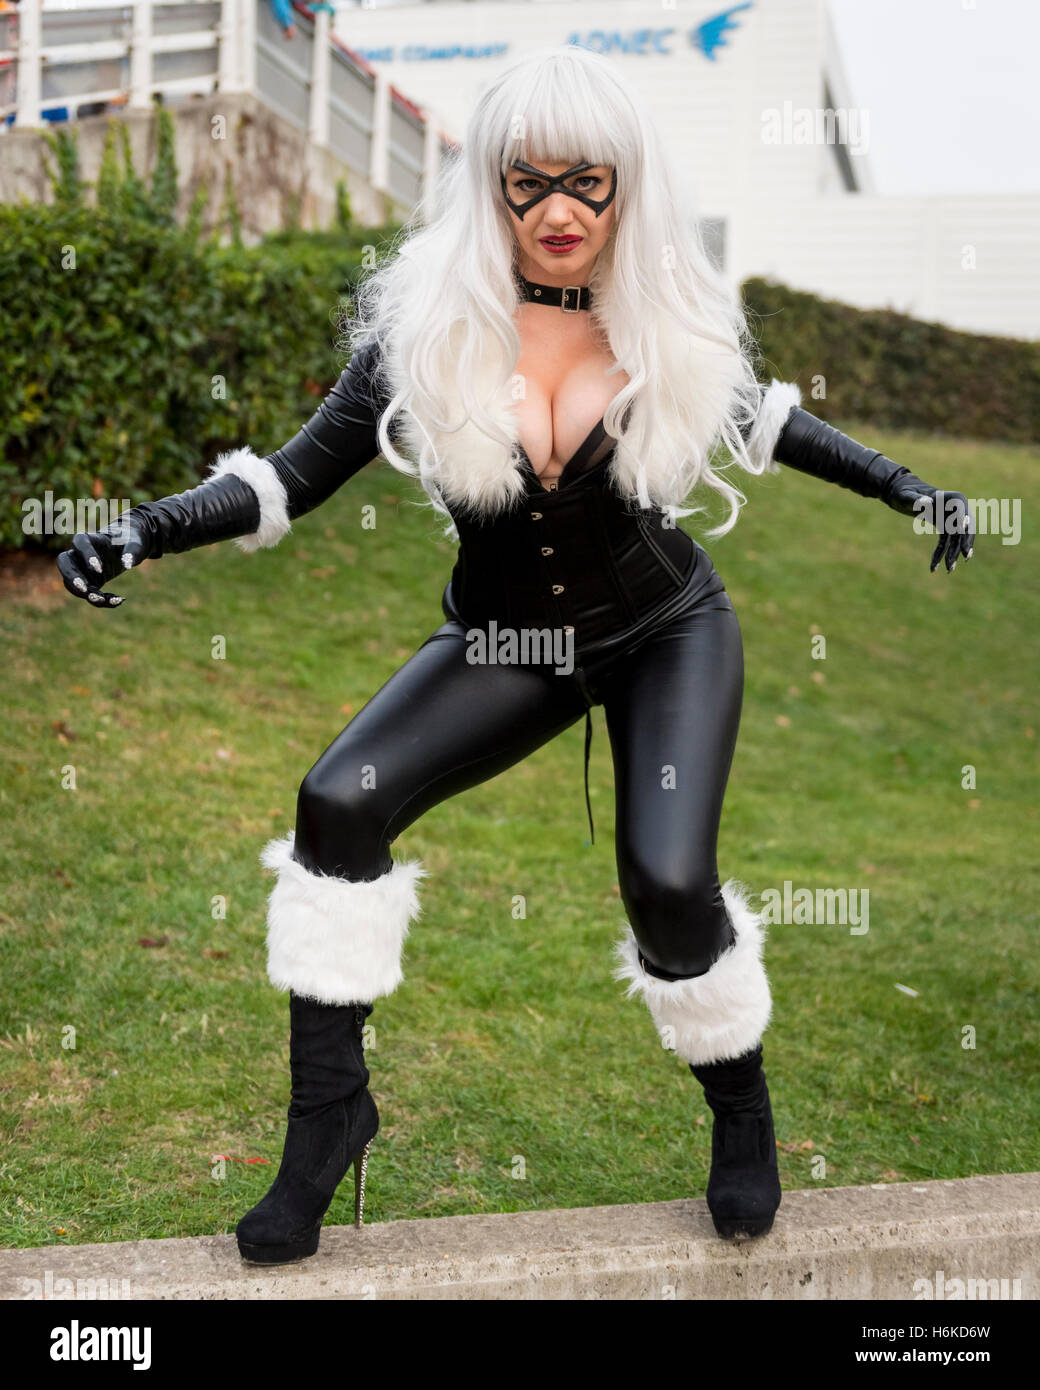 a58e218667f A girl dresses as Black Cat from SpiderMan, as cosplay, anime, games and  movie fans attend the popular MCM Comic Con festival at Excel in Docklands.